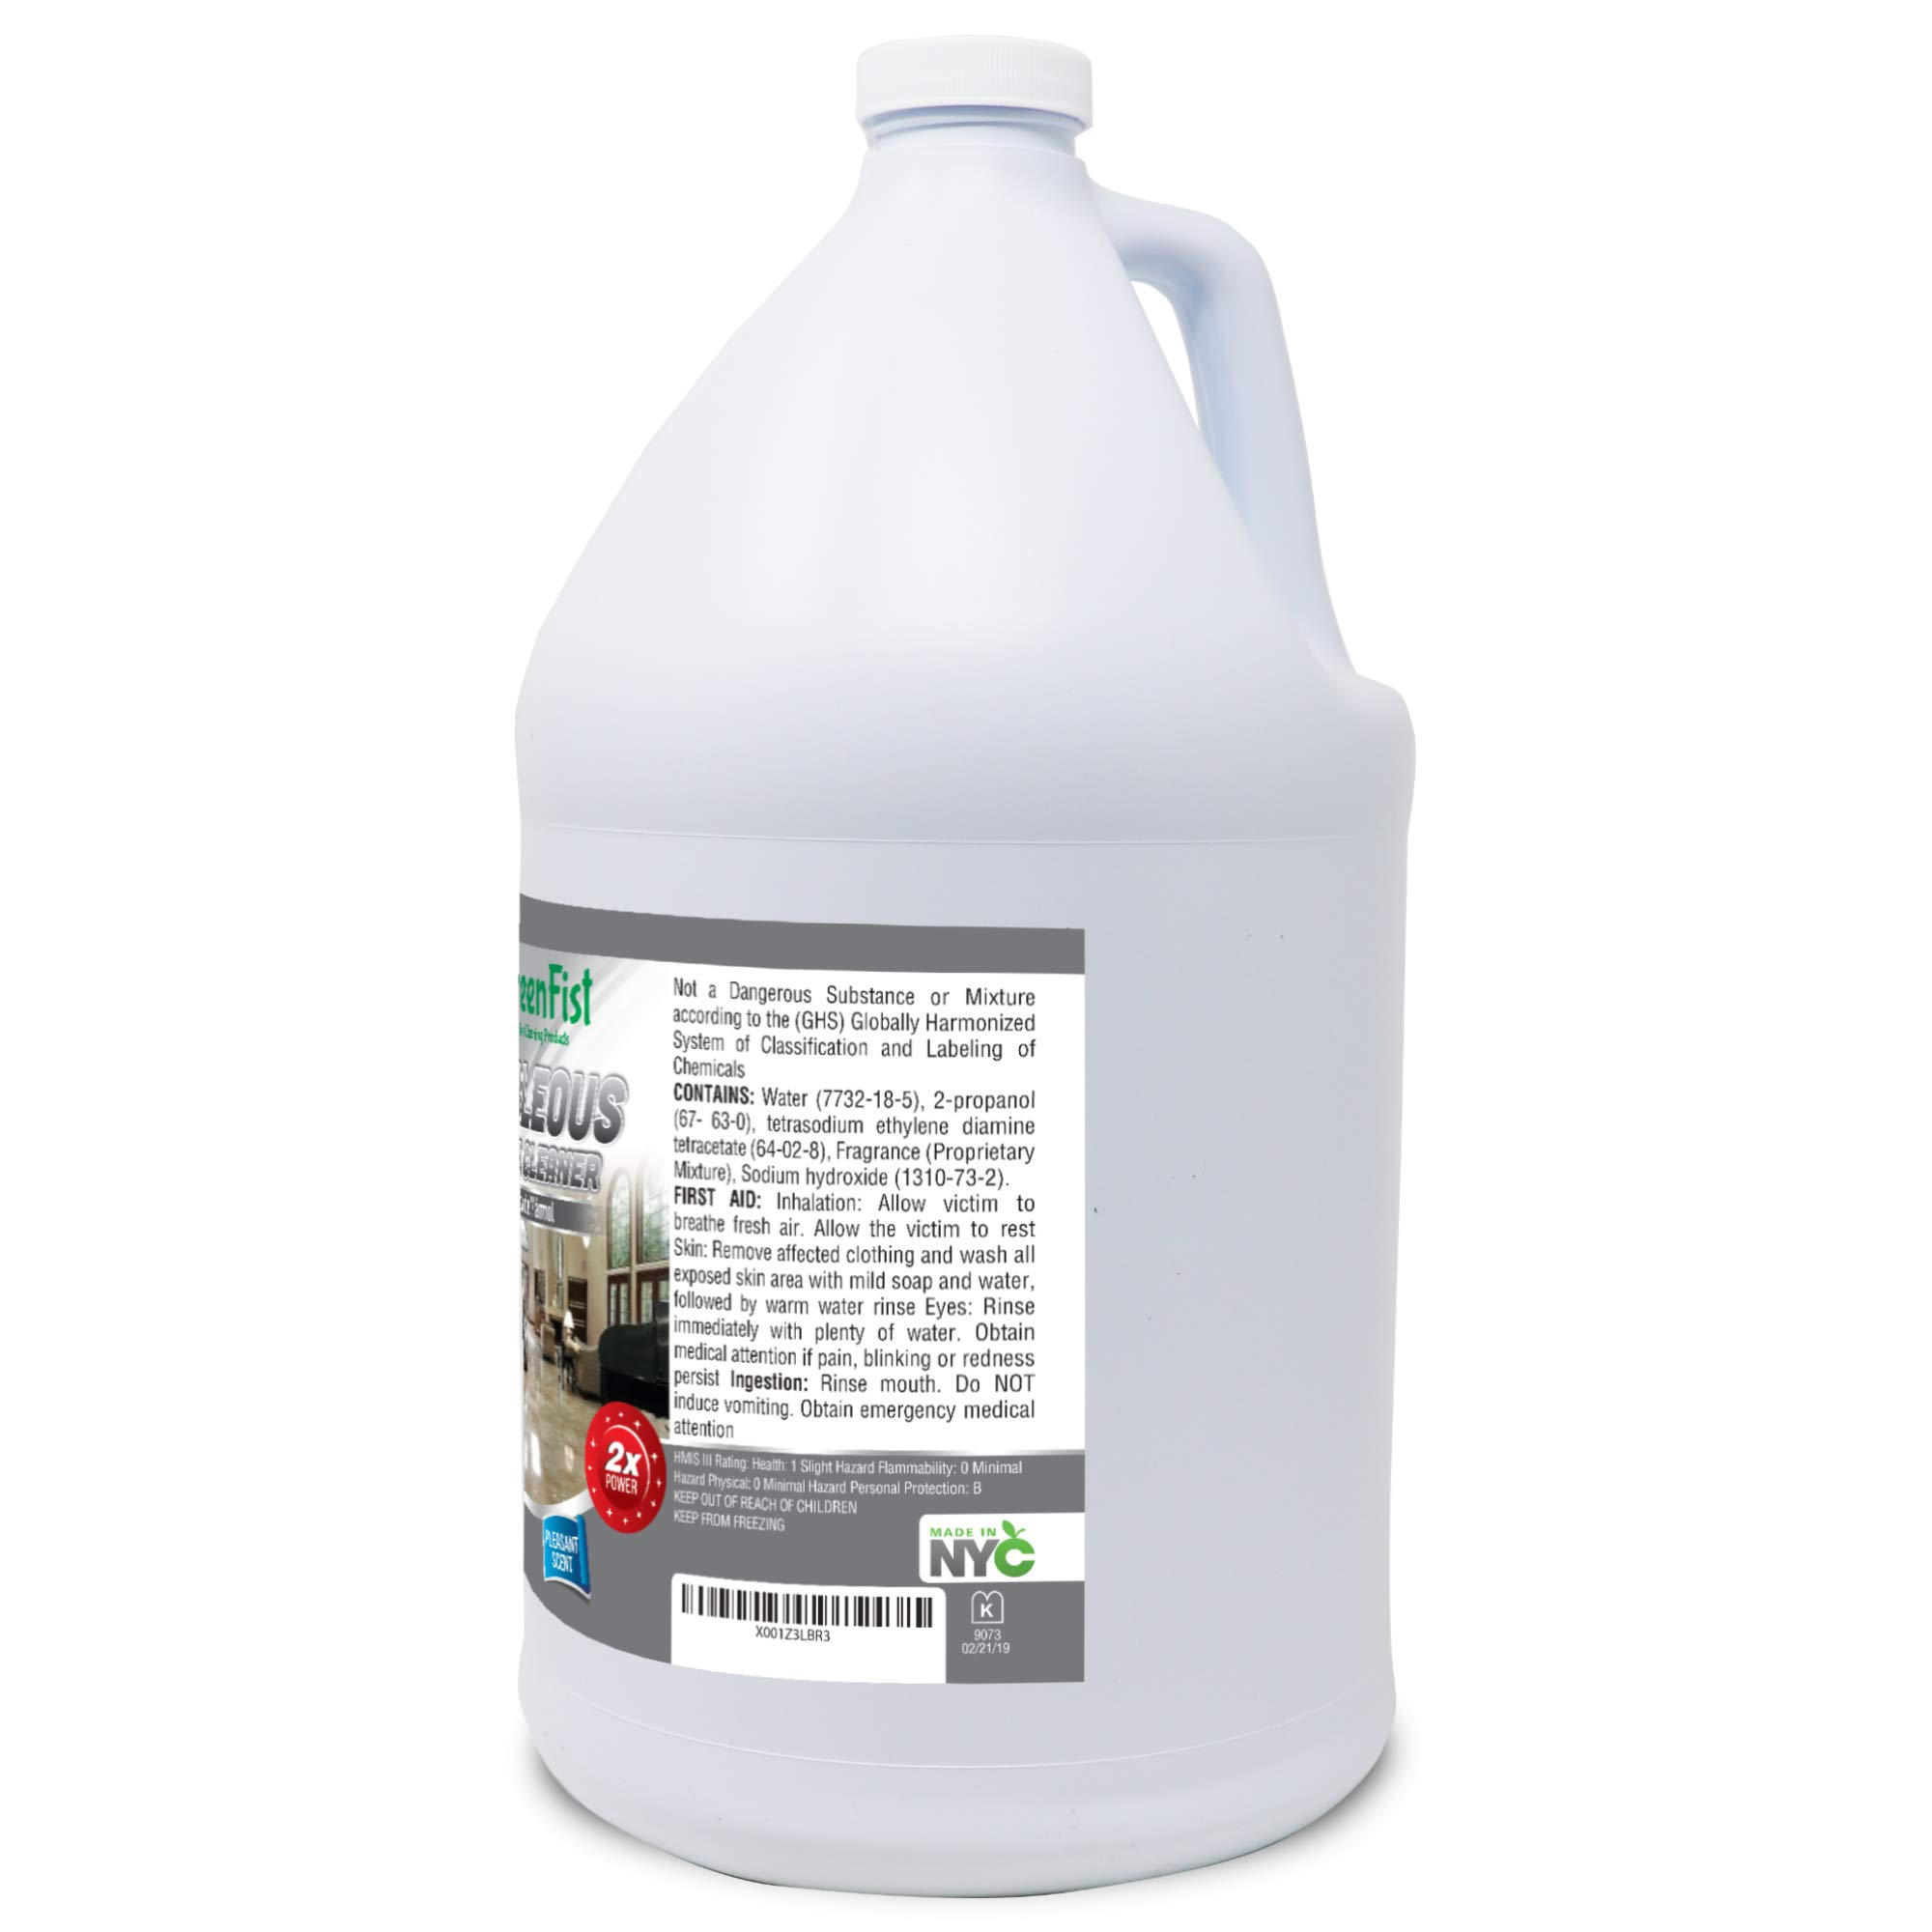 GreenFist Marbleous Marble Cleaner and Other Stone Surfaces Brightener & Restorer [Tile,Countertop,Porcelain,Lime-Stone,Ceramic,Granite,Brick,Vinyl] (1 Gallon) by GreenFist (Image #5)